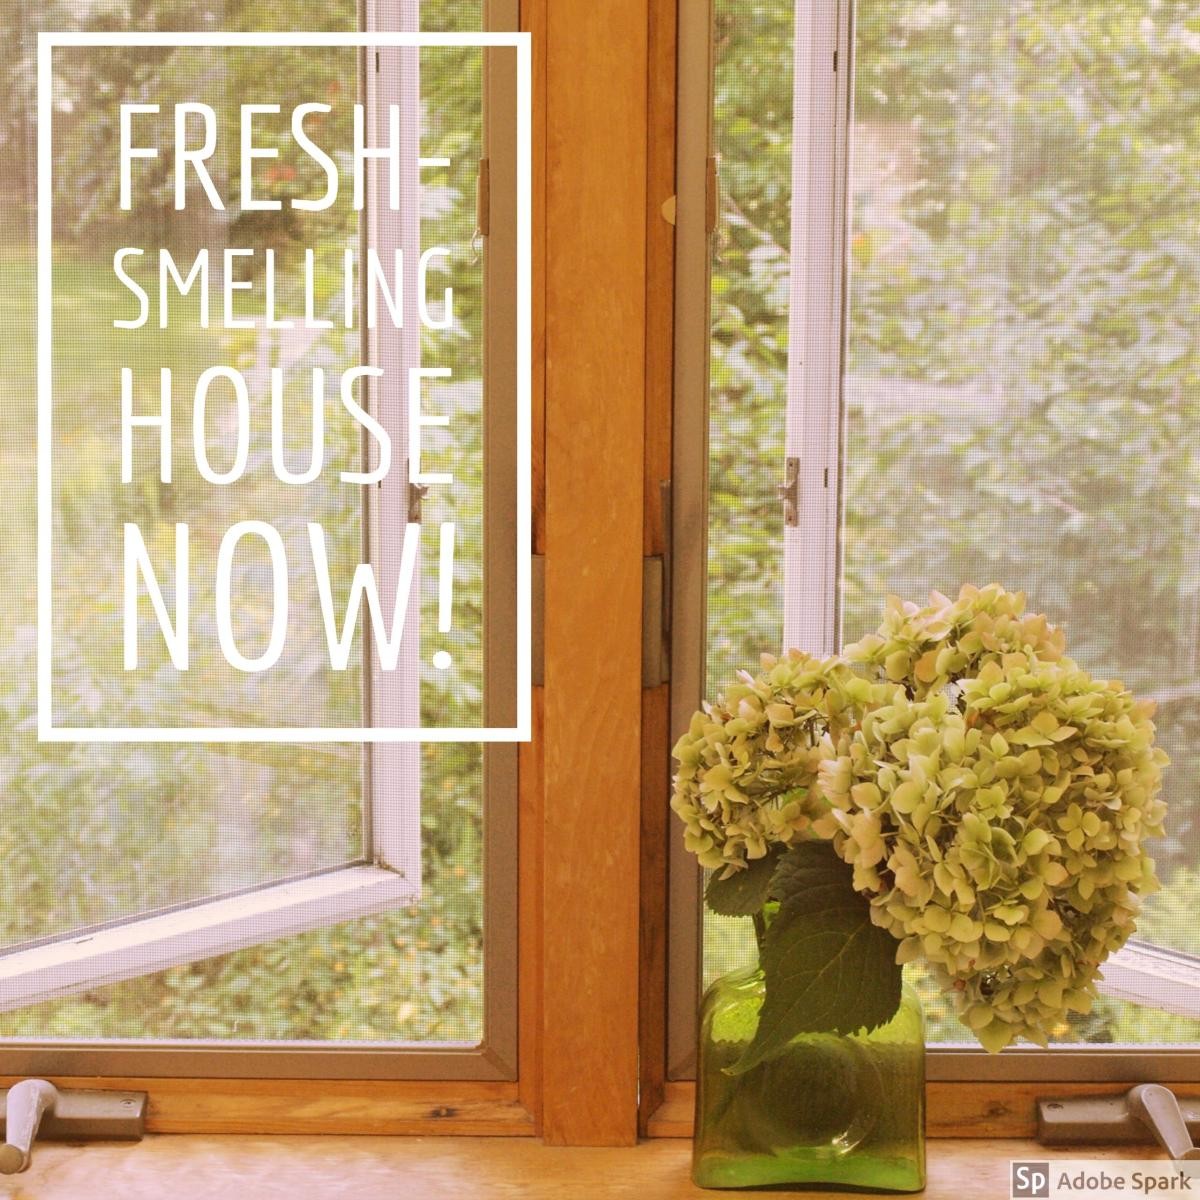 12 Ways to Make Your Home Smell Fabulous | Dengarden